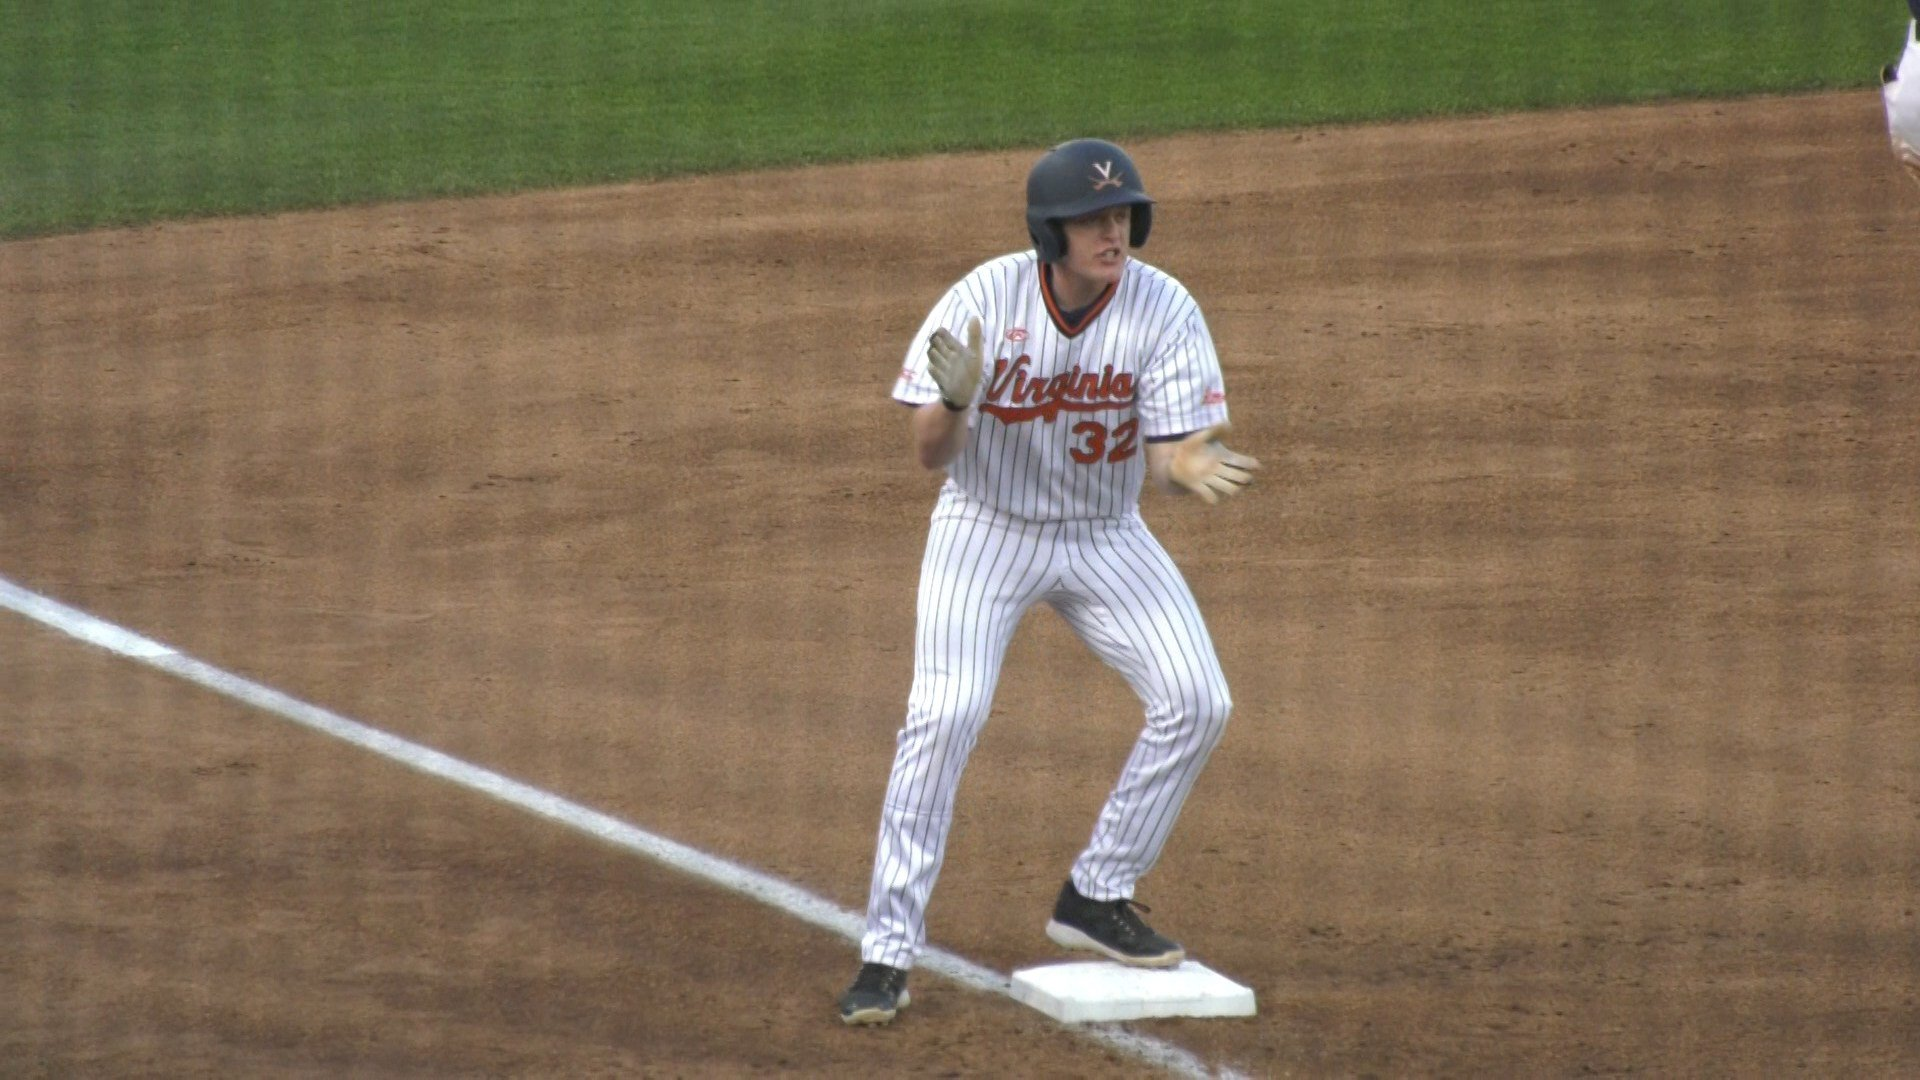 Nate Eikhoff celebrates after hitting a triple